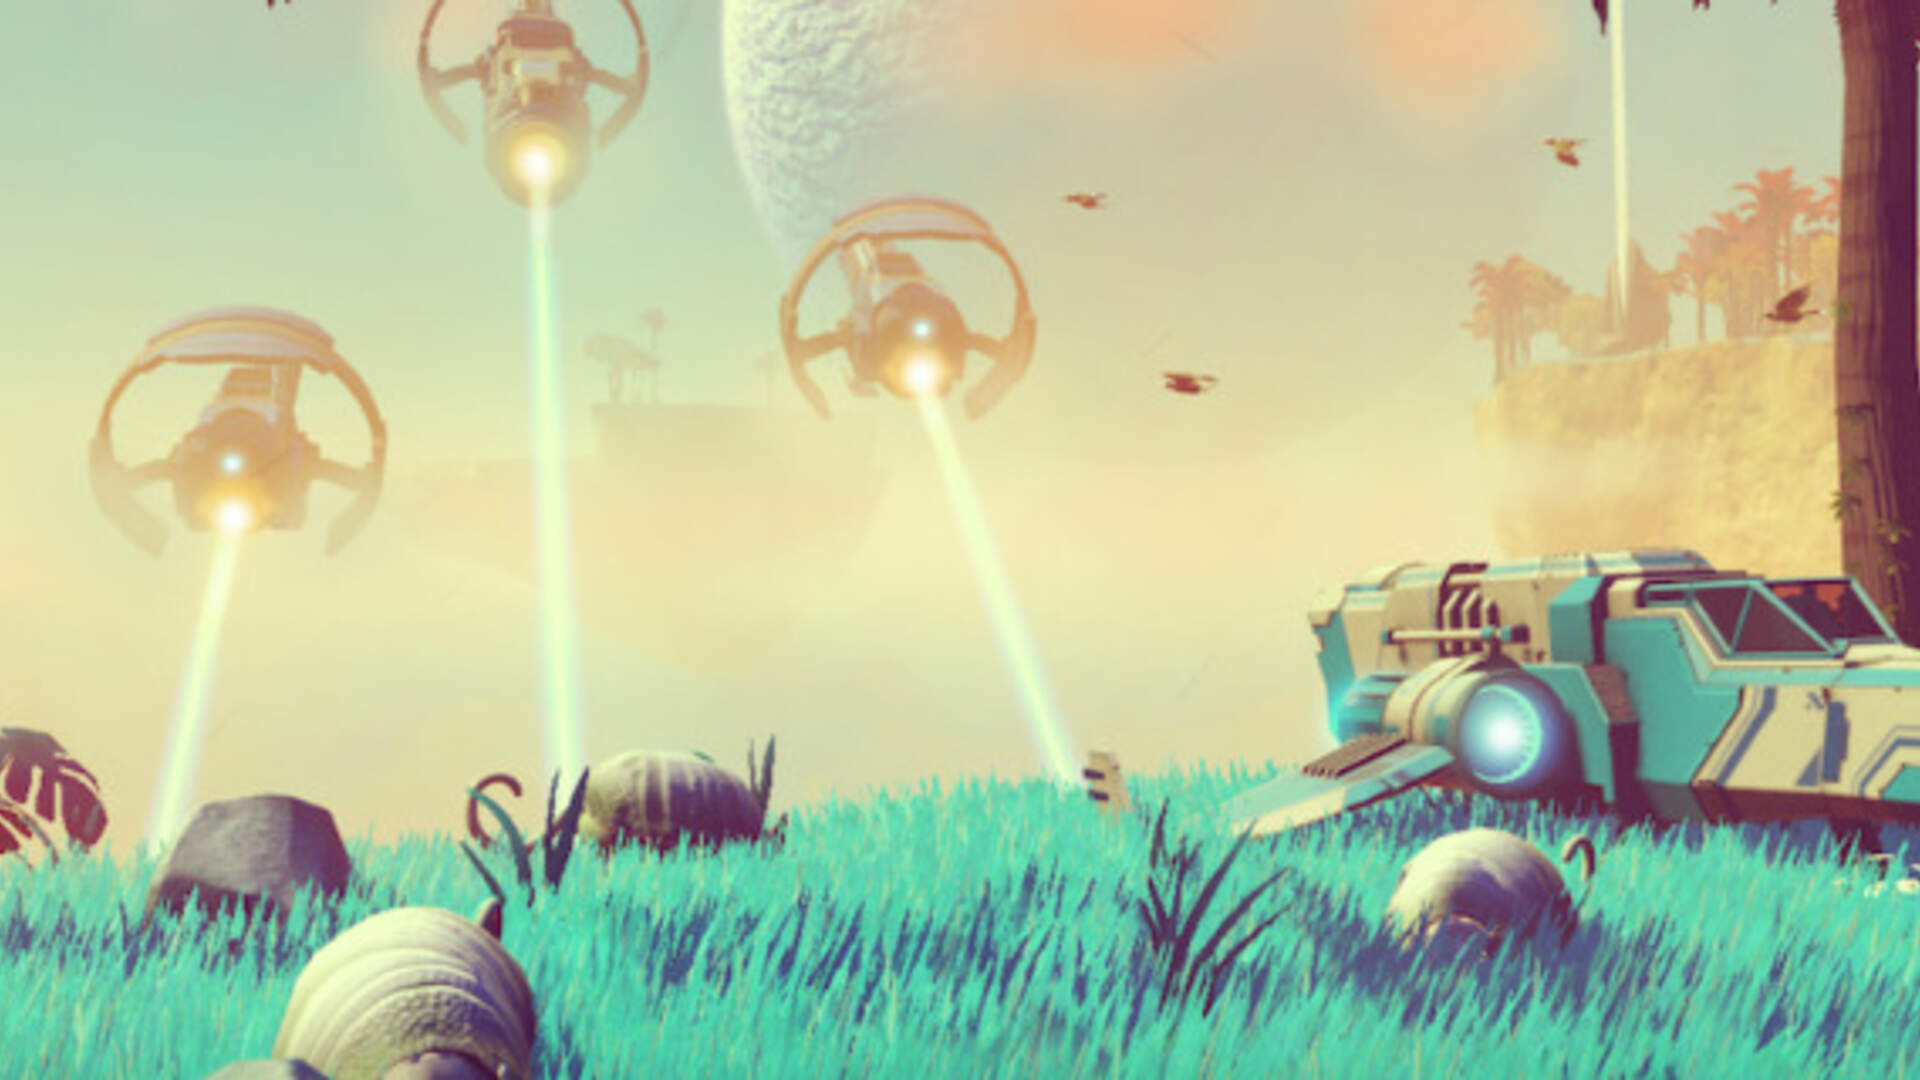 New No Man's Sky Expansion Accidentally Leaked, Details Here